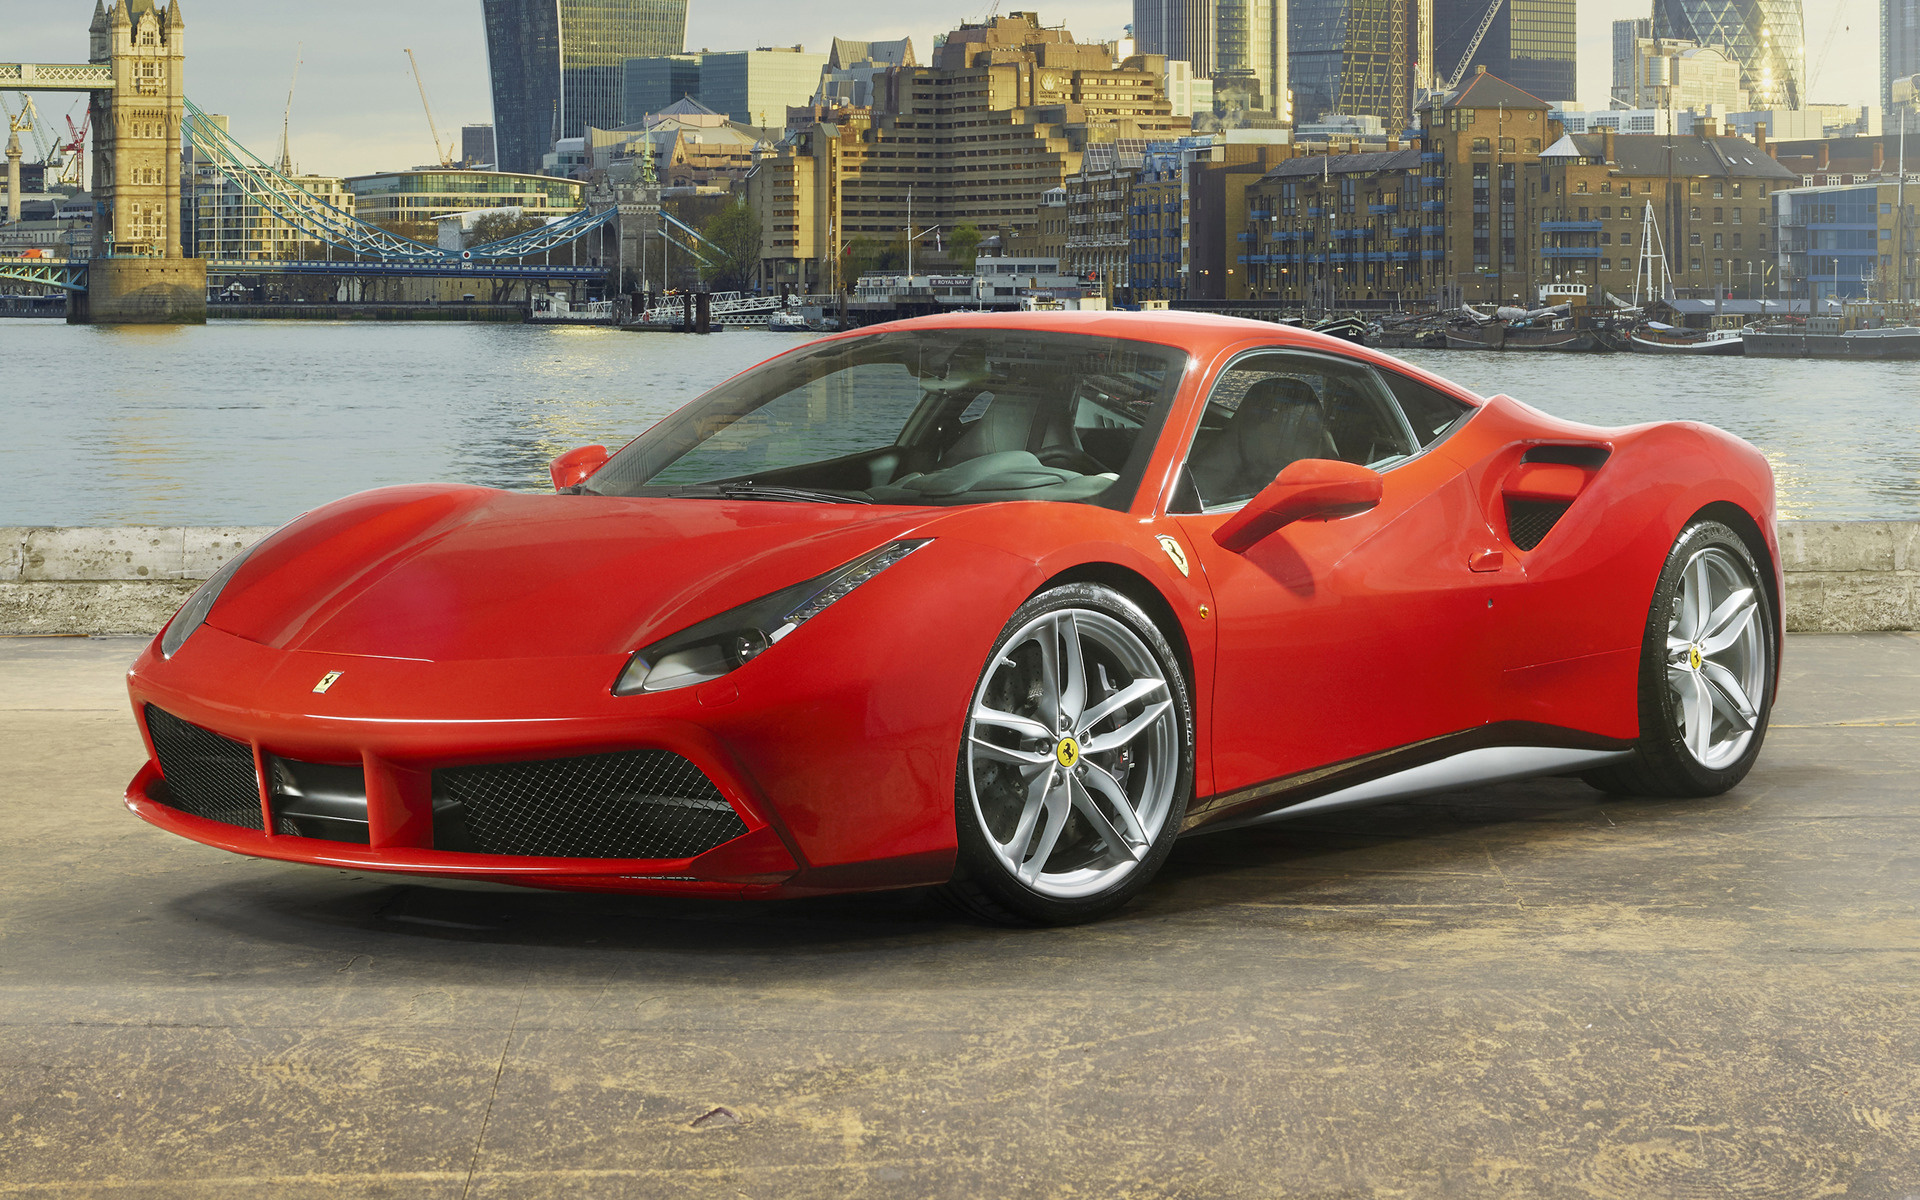 Ferrari 488 GTB (2015) Wallpapers and HD Images - Car Pixel